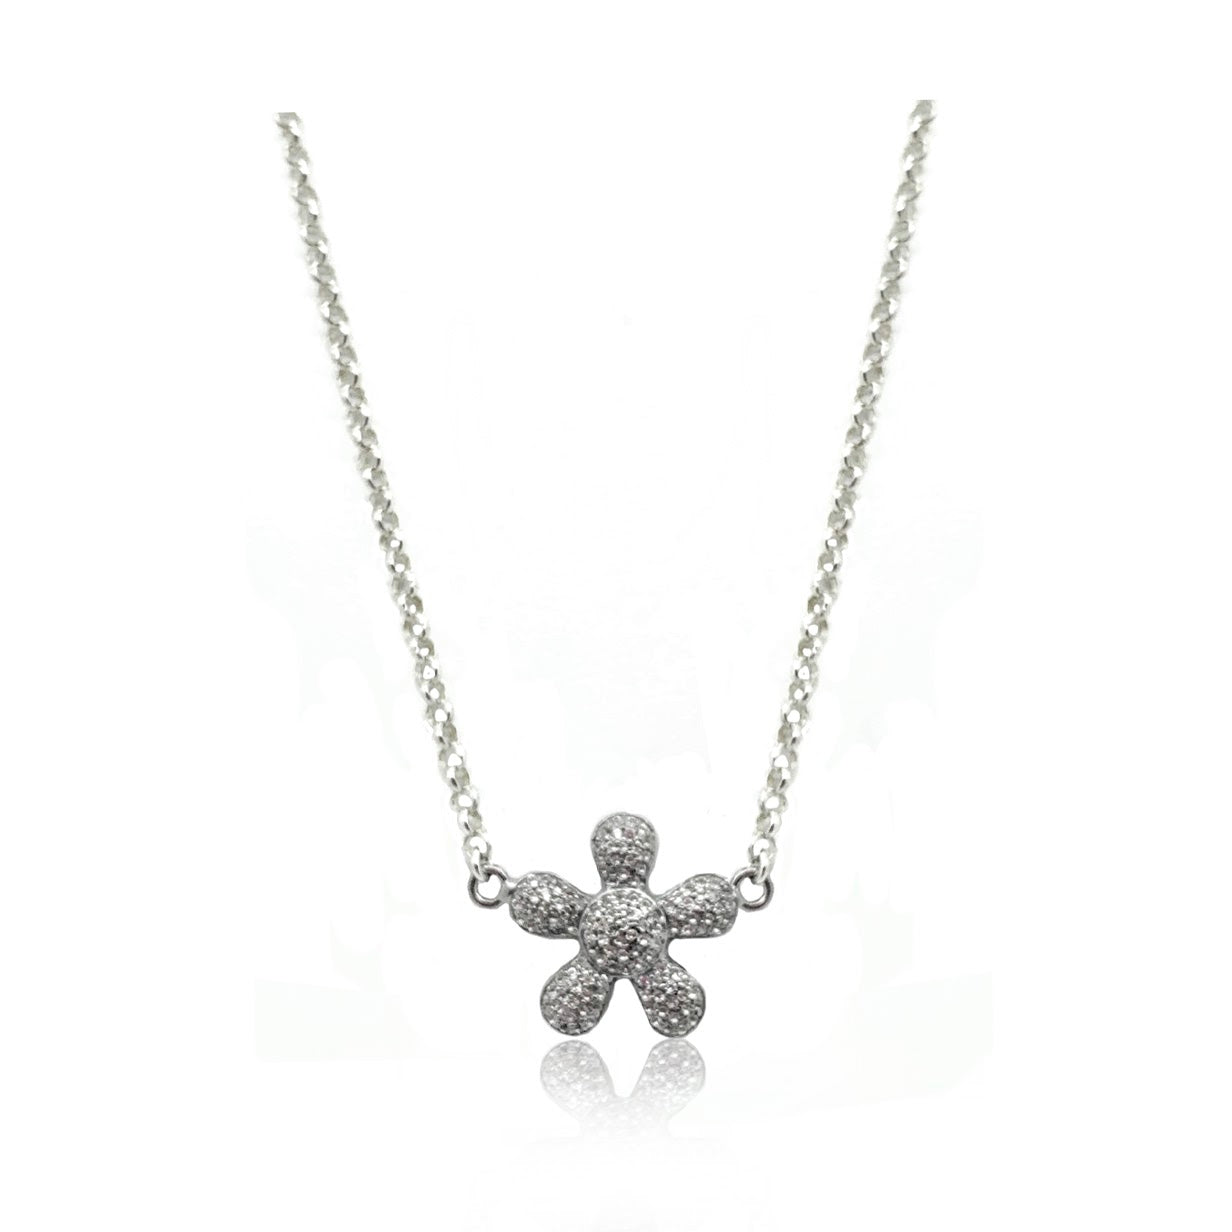 Tiffany Daisy Necklace